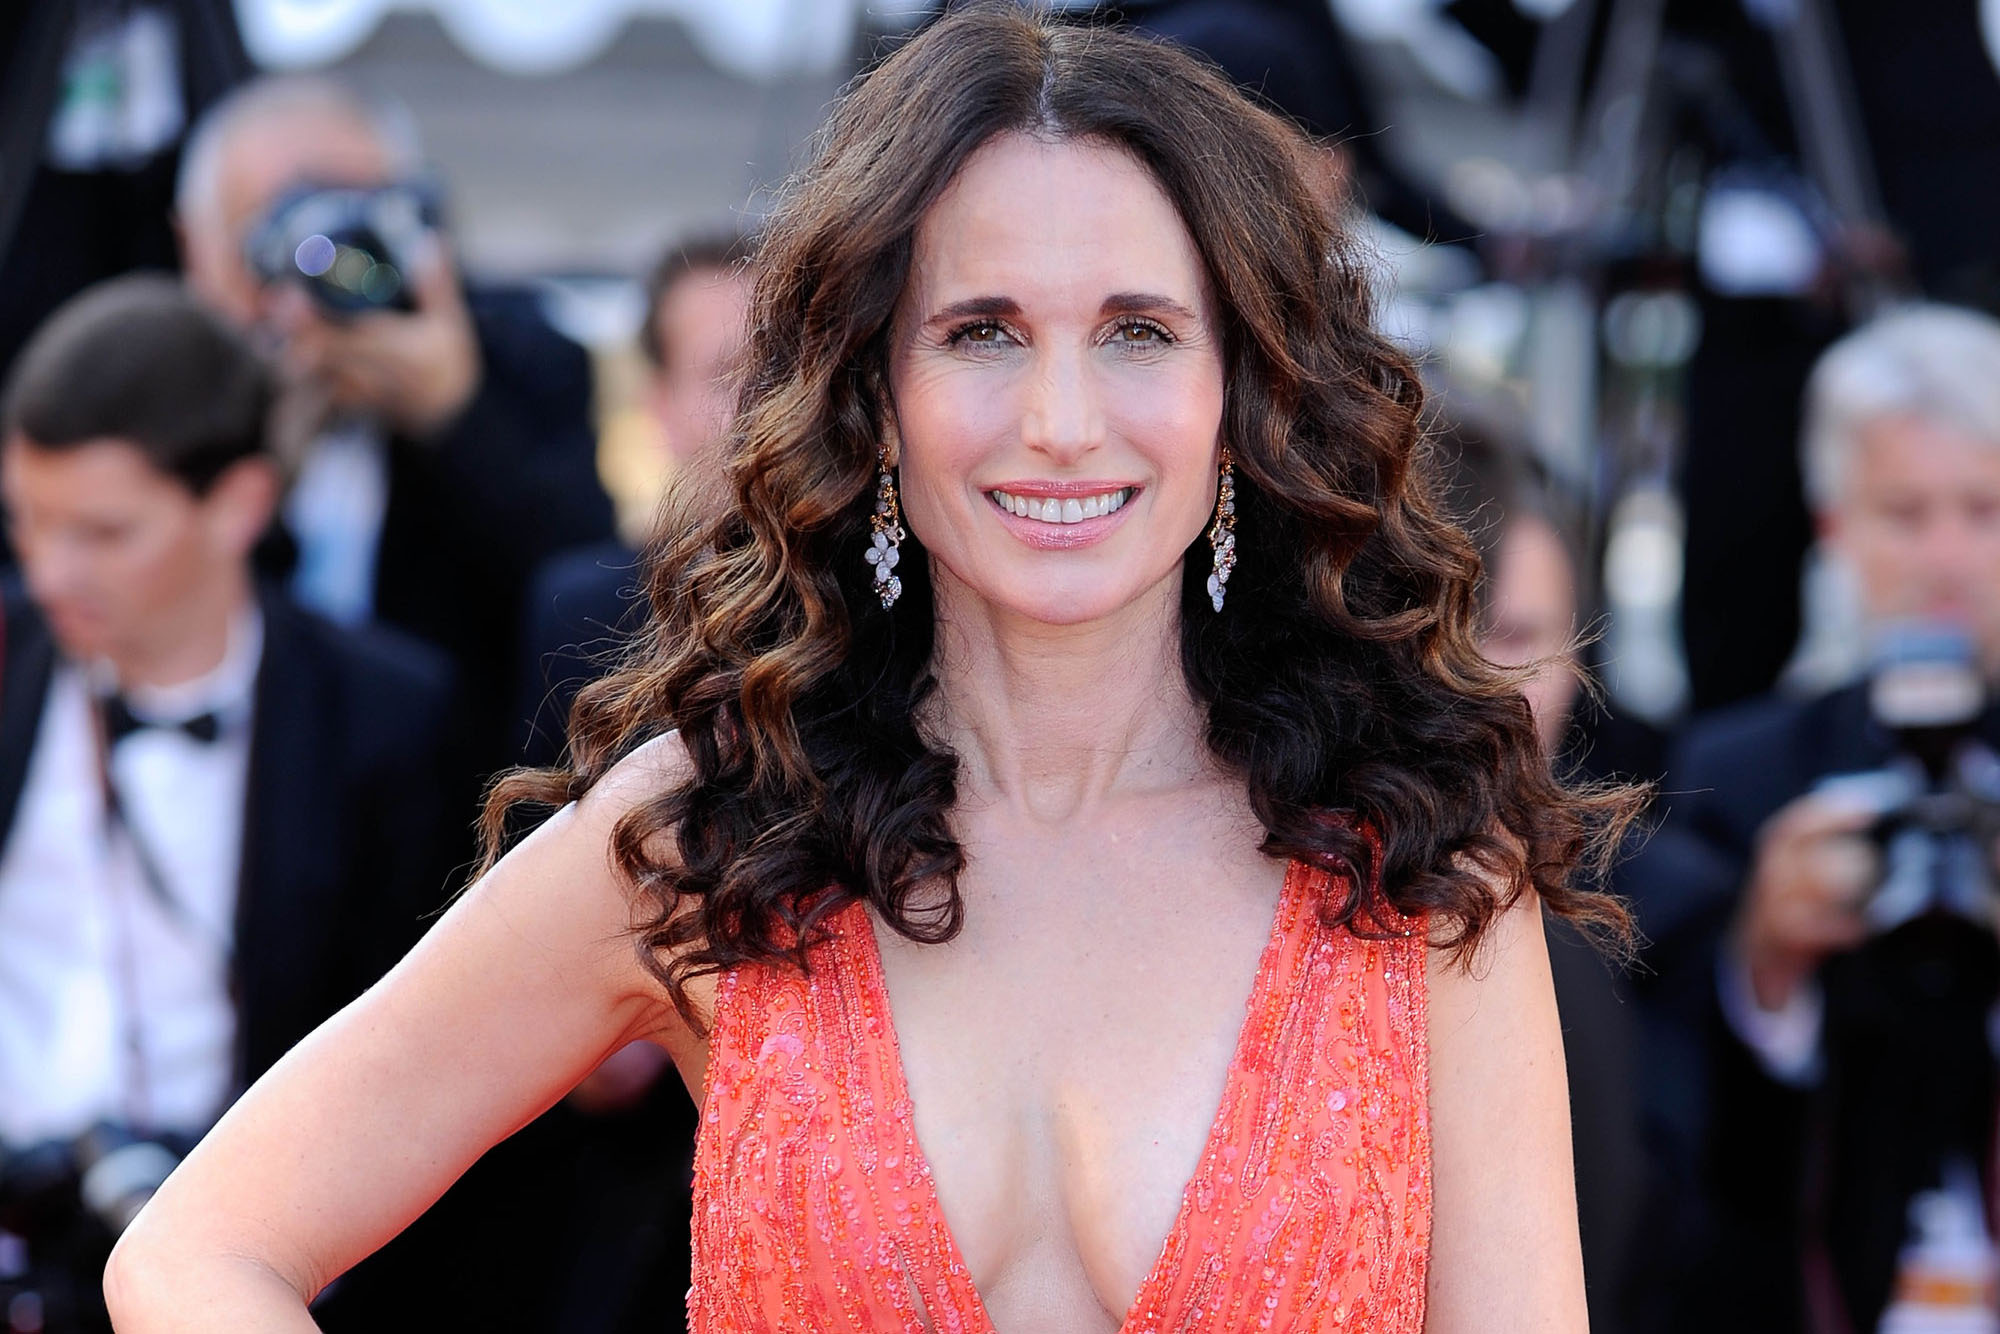 Andie MacDowell Is Out Of The Spotlight, But Where Did She Go?